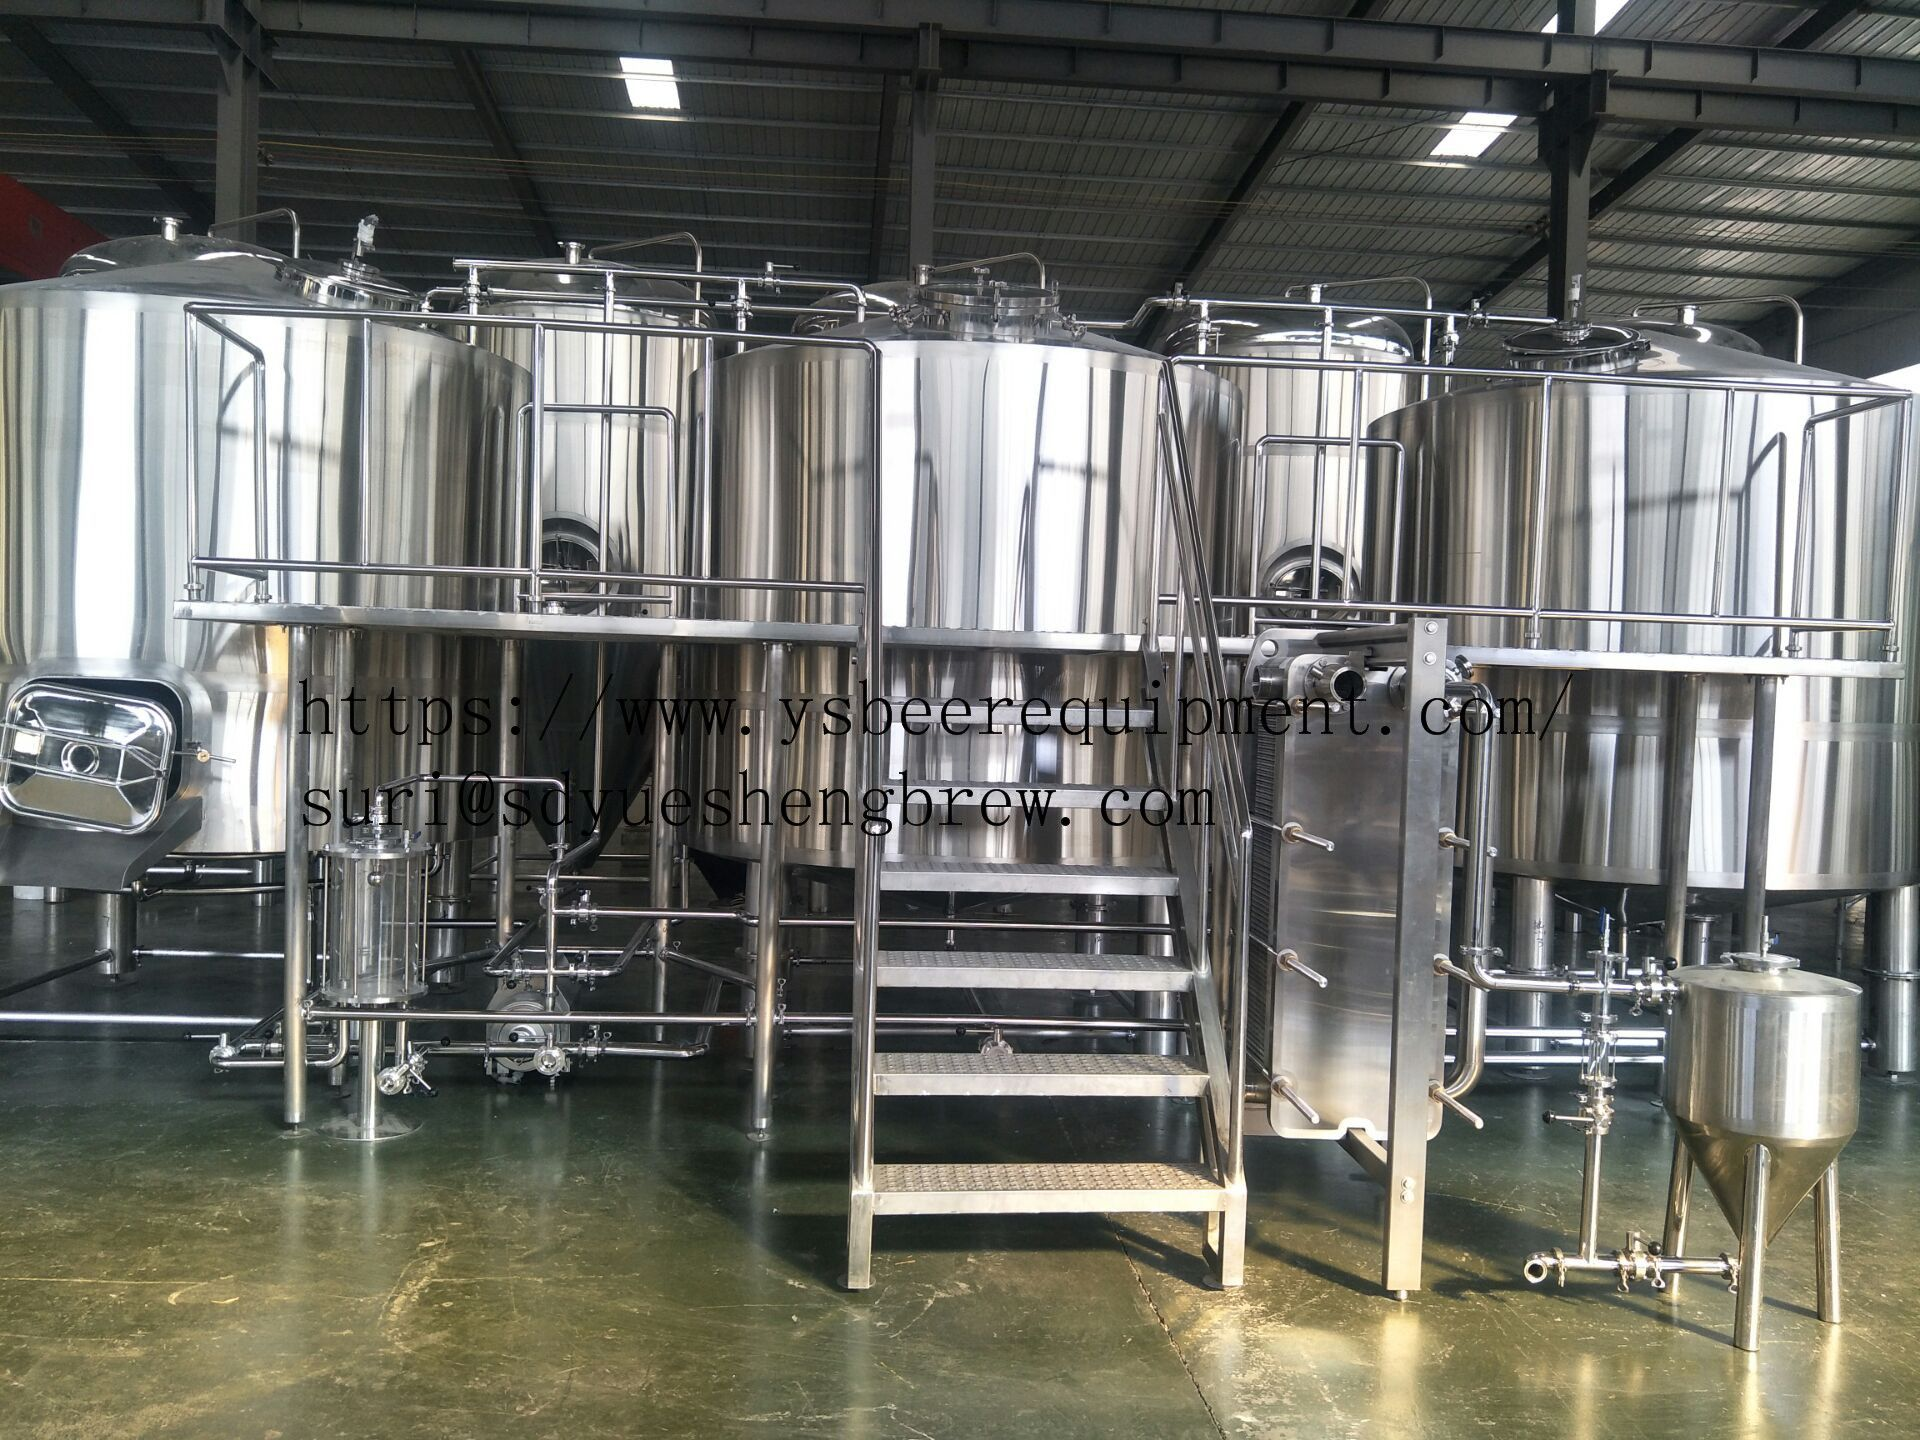 2000lbrewery Commercialbeerbrewingequipment 3 Or 4 Vessels Brewhouse Mash Lauter Kettle W Brewery Equipment Beer Brewing Equipment Brewing Equipment